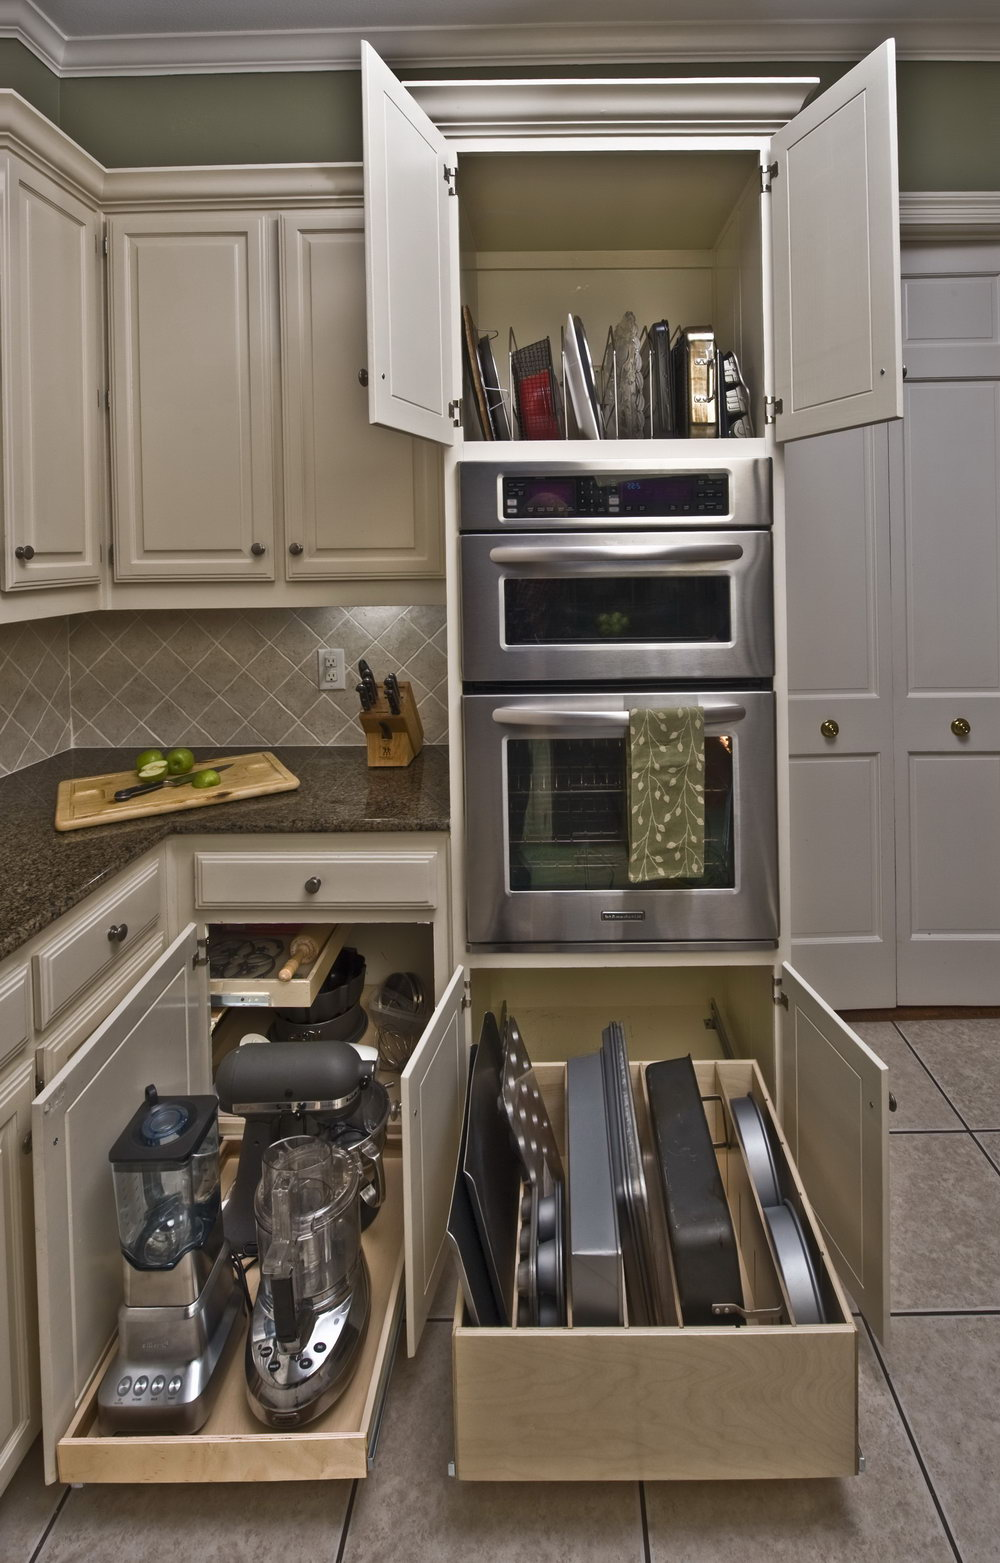 Tall Kitchen Cabinets With Pull Out Shelves